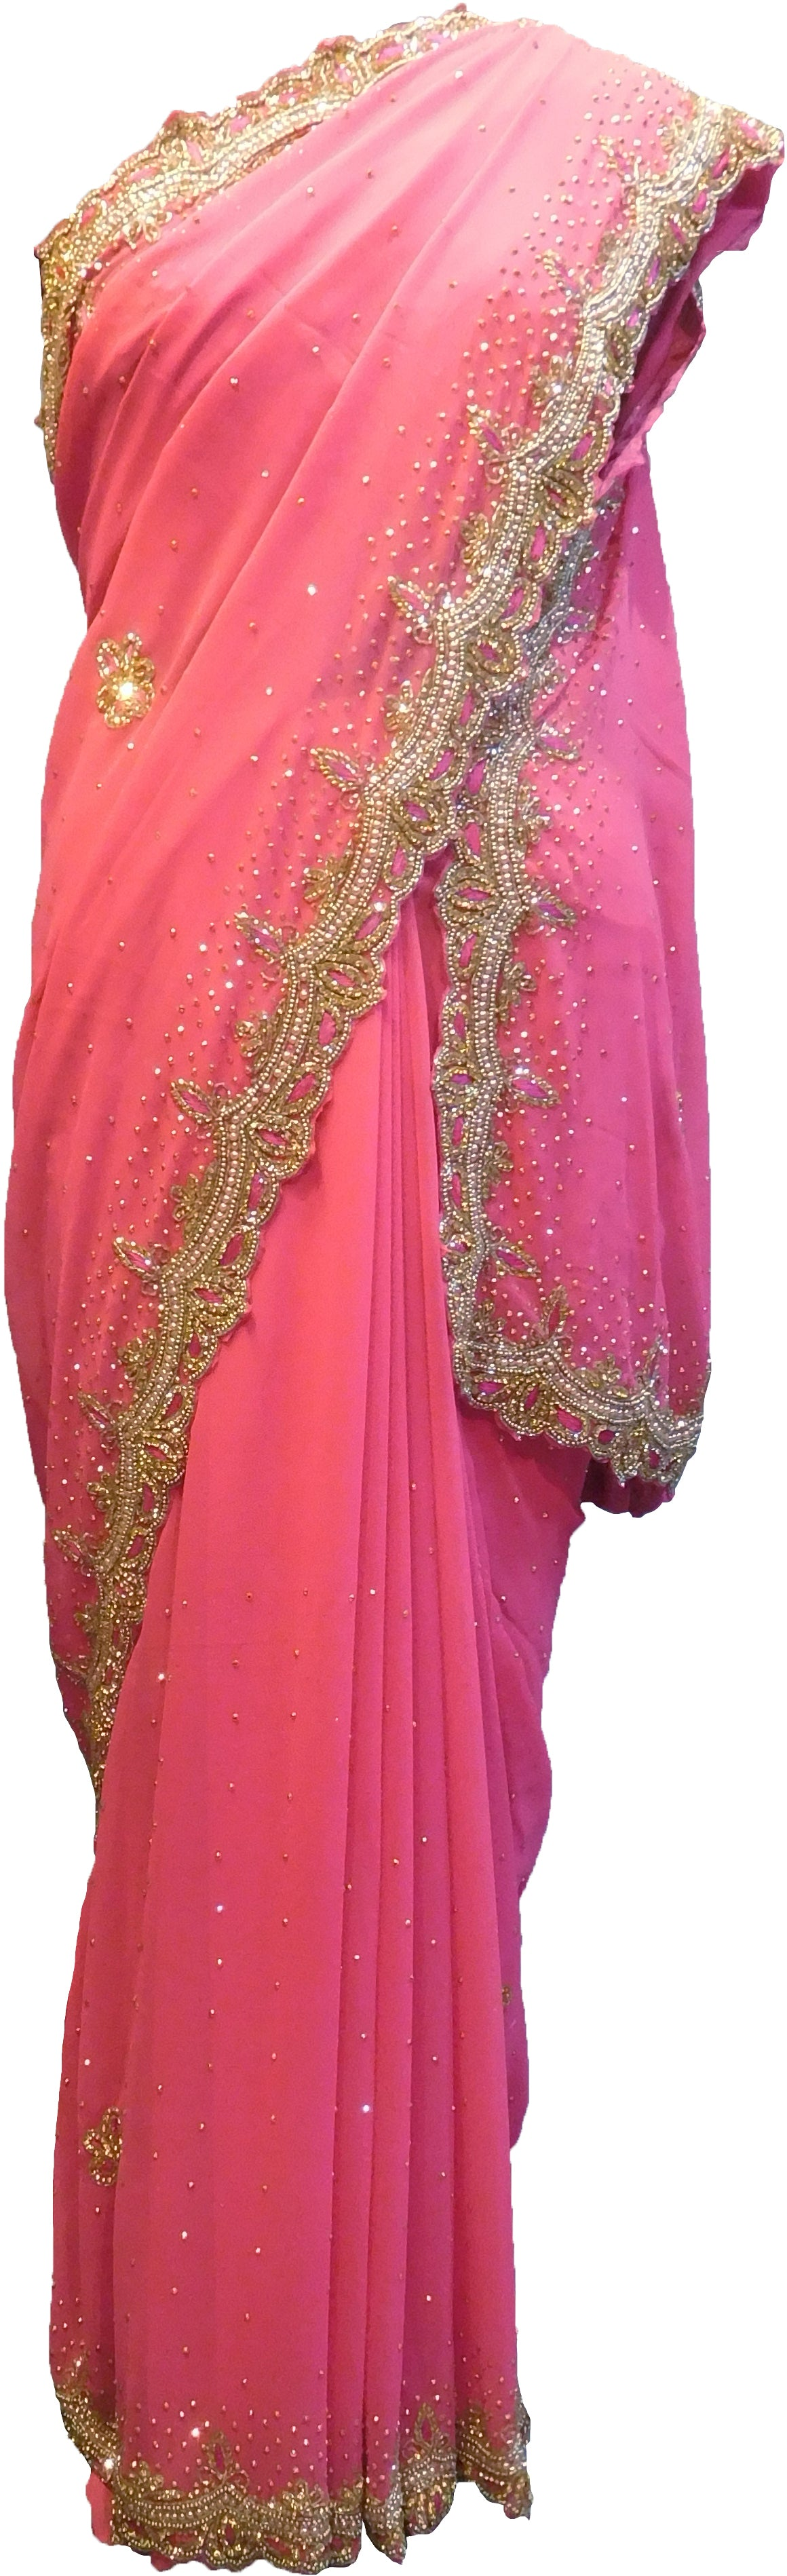 SMSAREE Pink Designer Wedding Partywear Georgette Cutdana Stone Beads Thread & Bullion Hand Embroidery Work Bridal Saree Sari With Blouse Piece F353